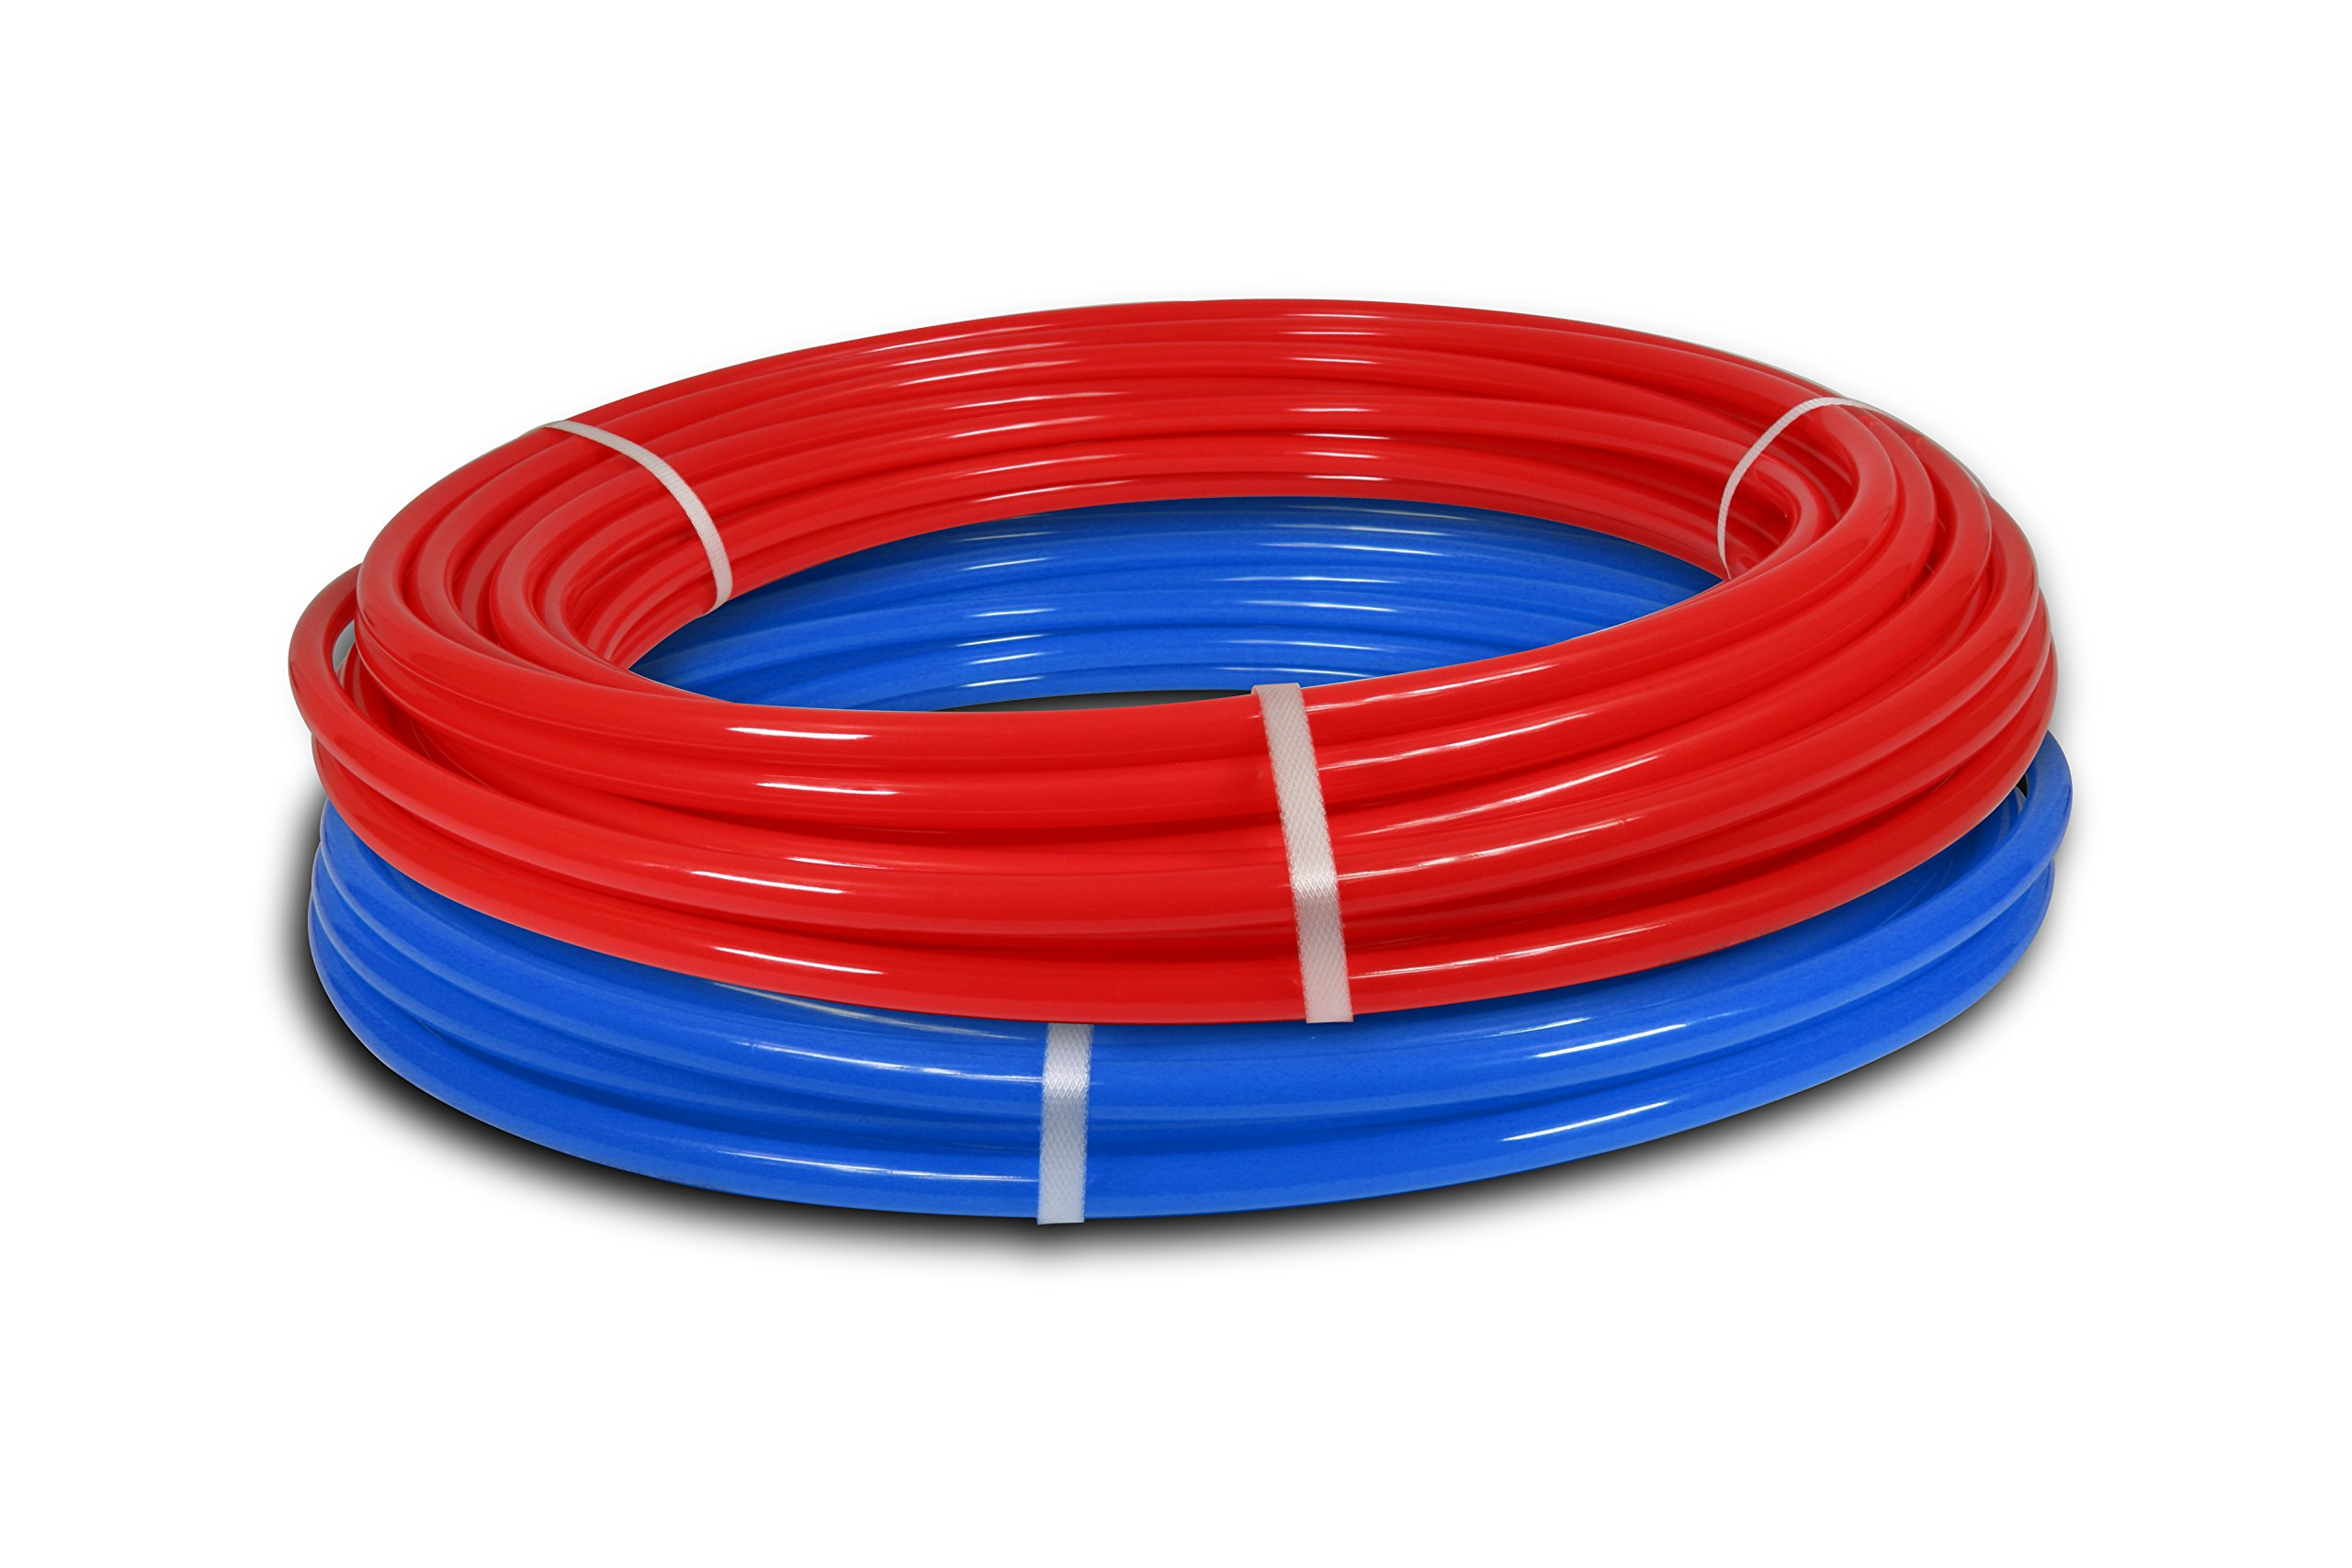 Pexflow PXKT-RB10012 PEX Potable Water Tubing Combo Non-Barrier Pipe for Residential or Commercial, 1/2 Inch x 100 Feet (1 Red + 1 Blue) by PEXFLOW